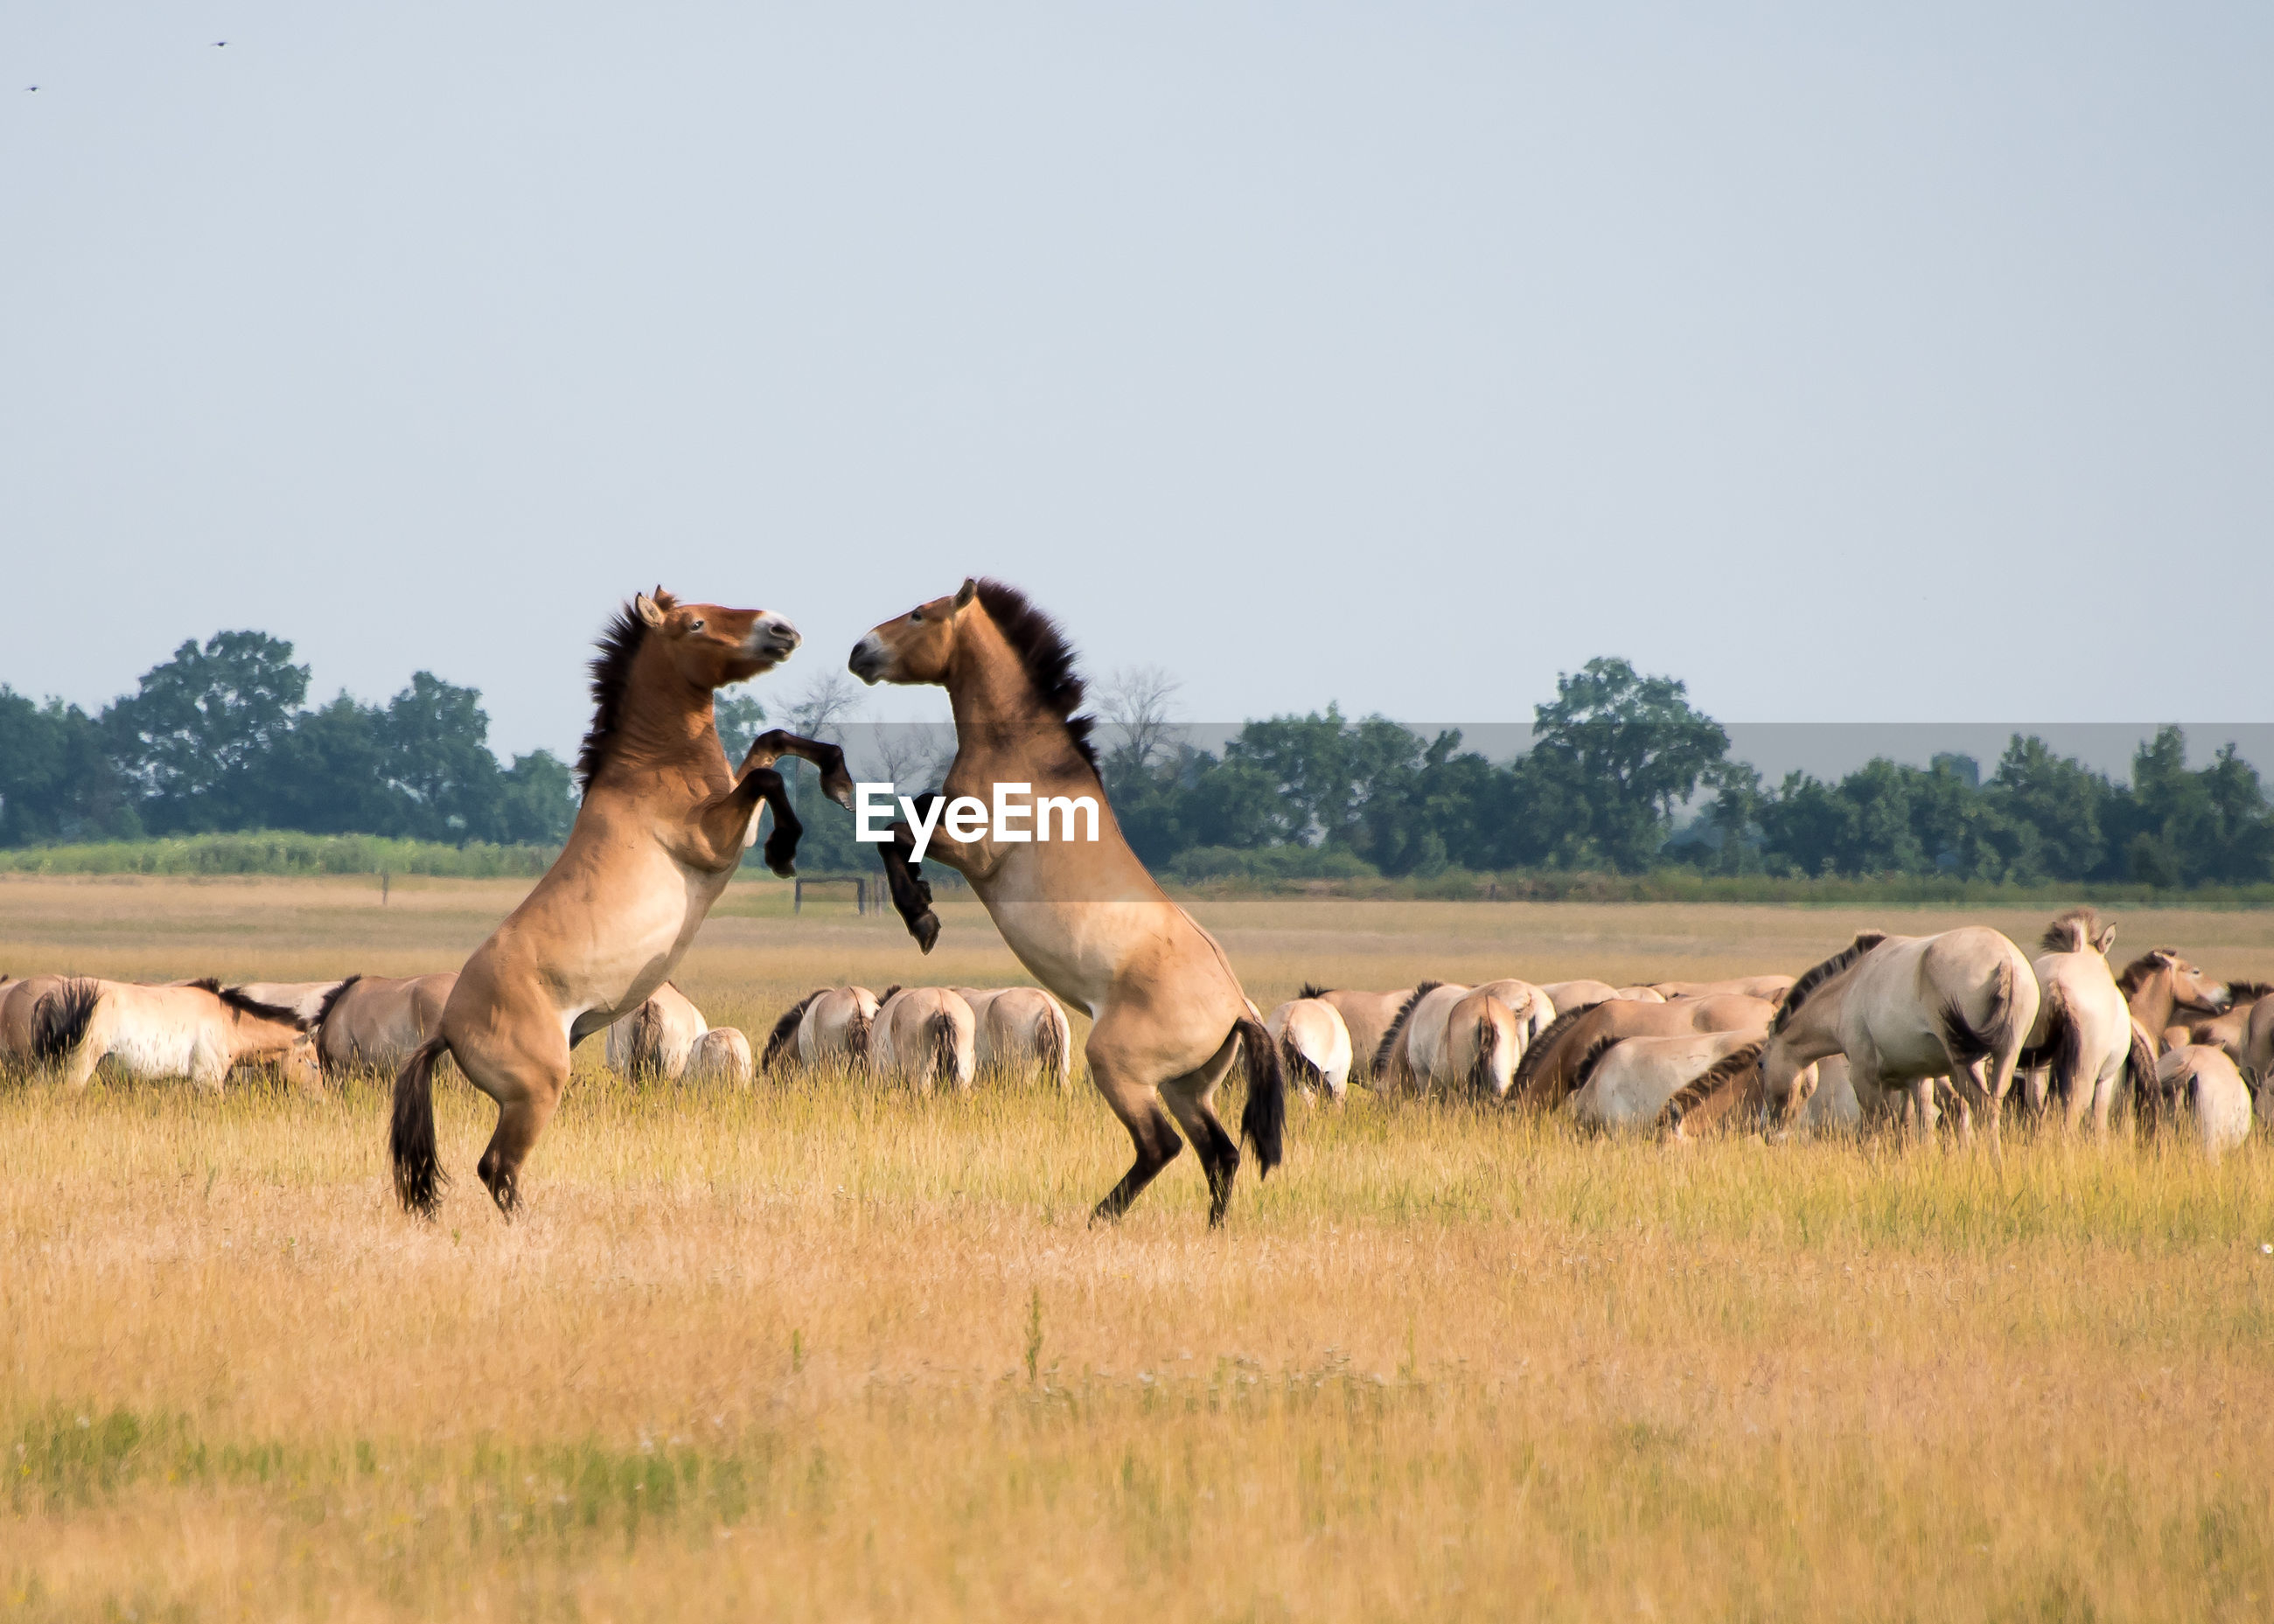 Horses fighting on grassy field